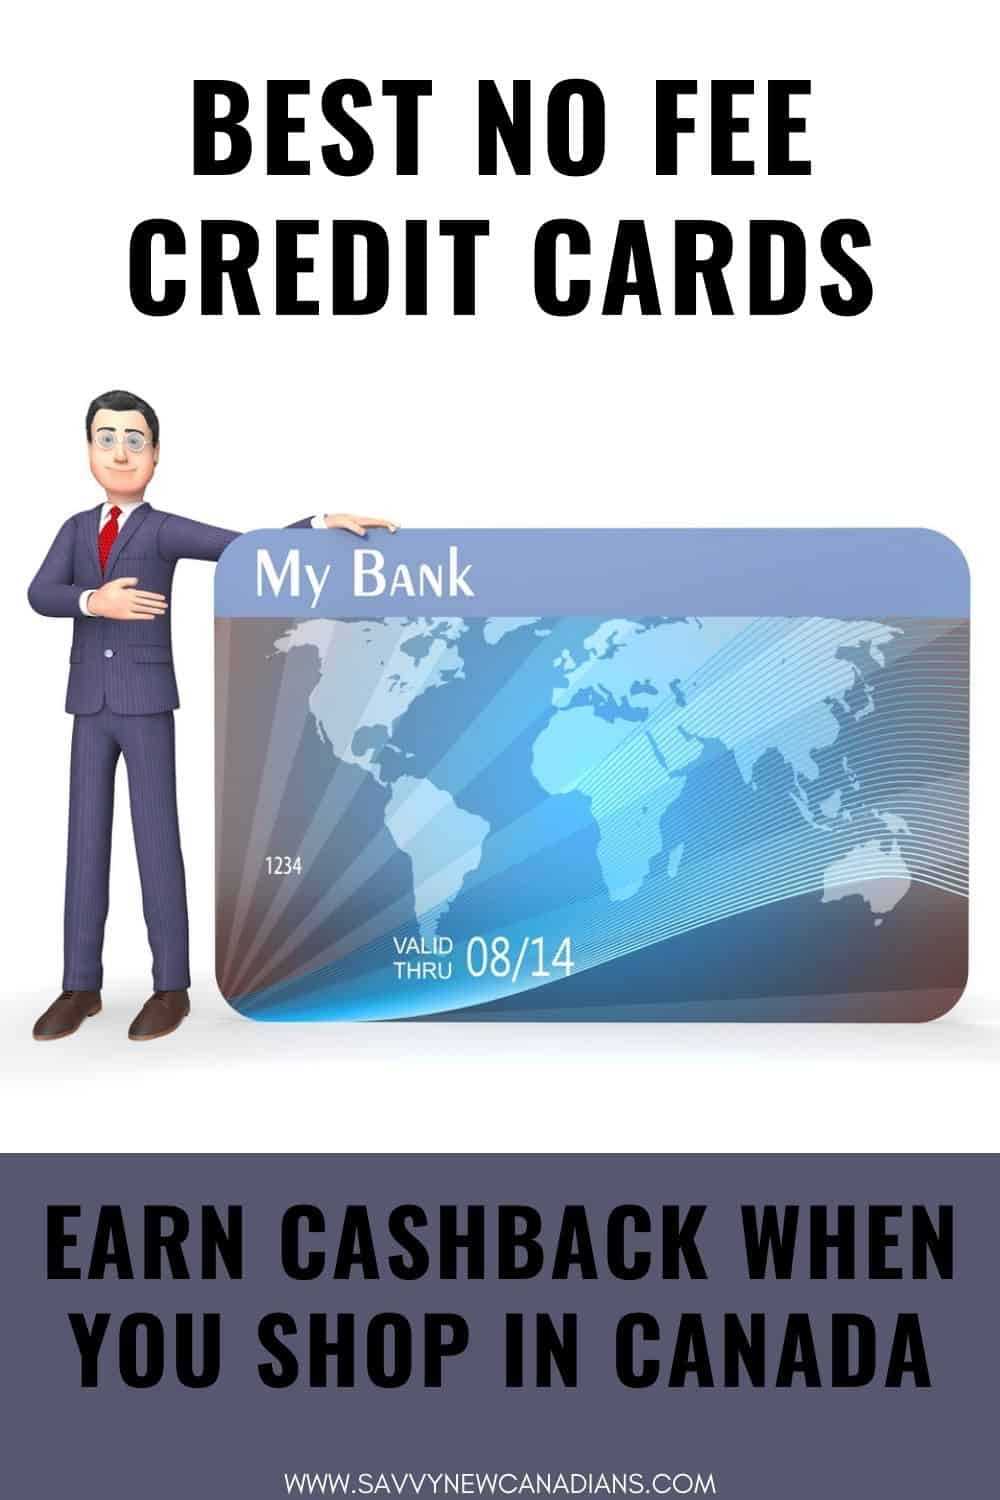 Best No Fee Credit Cards in Canada for 2021